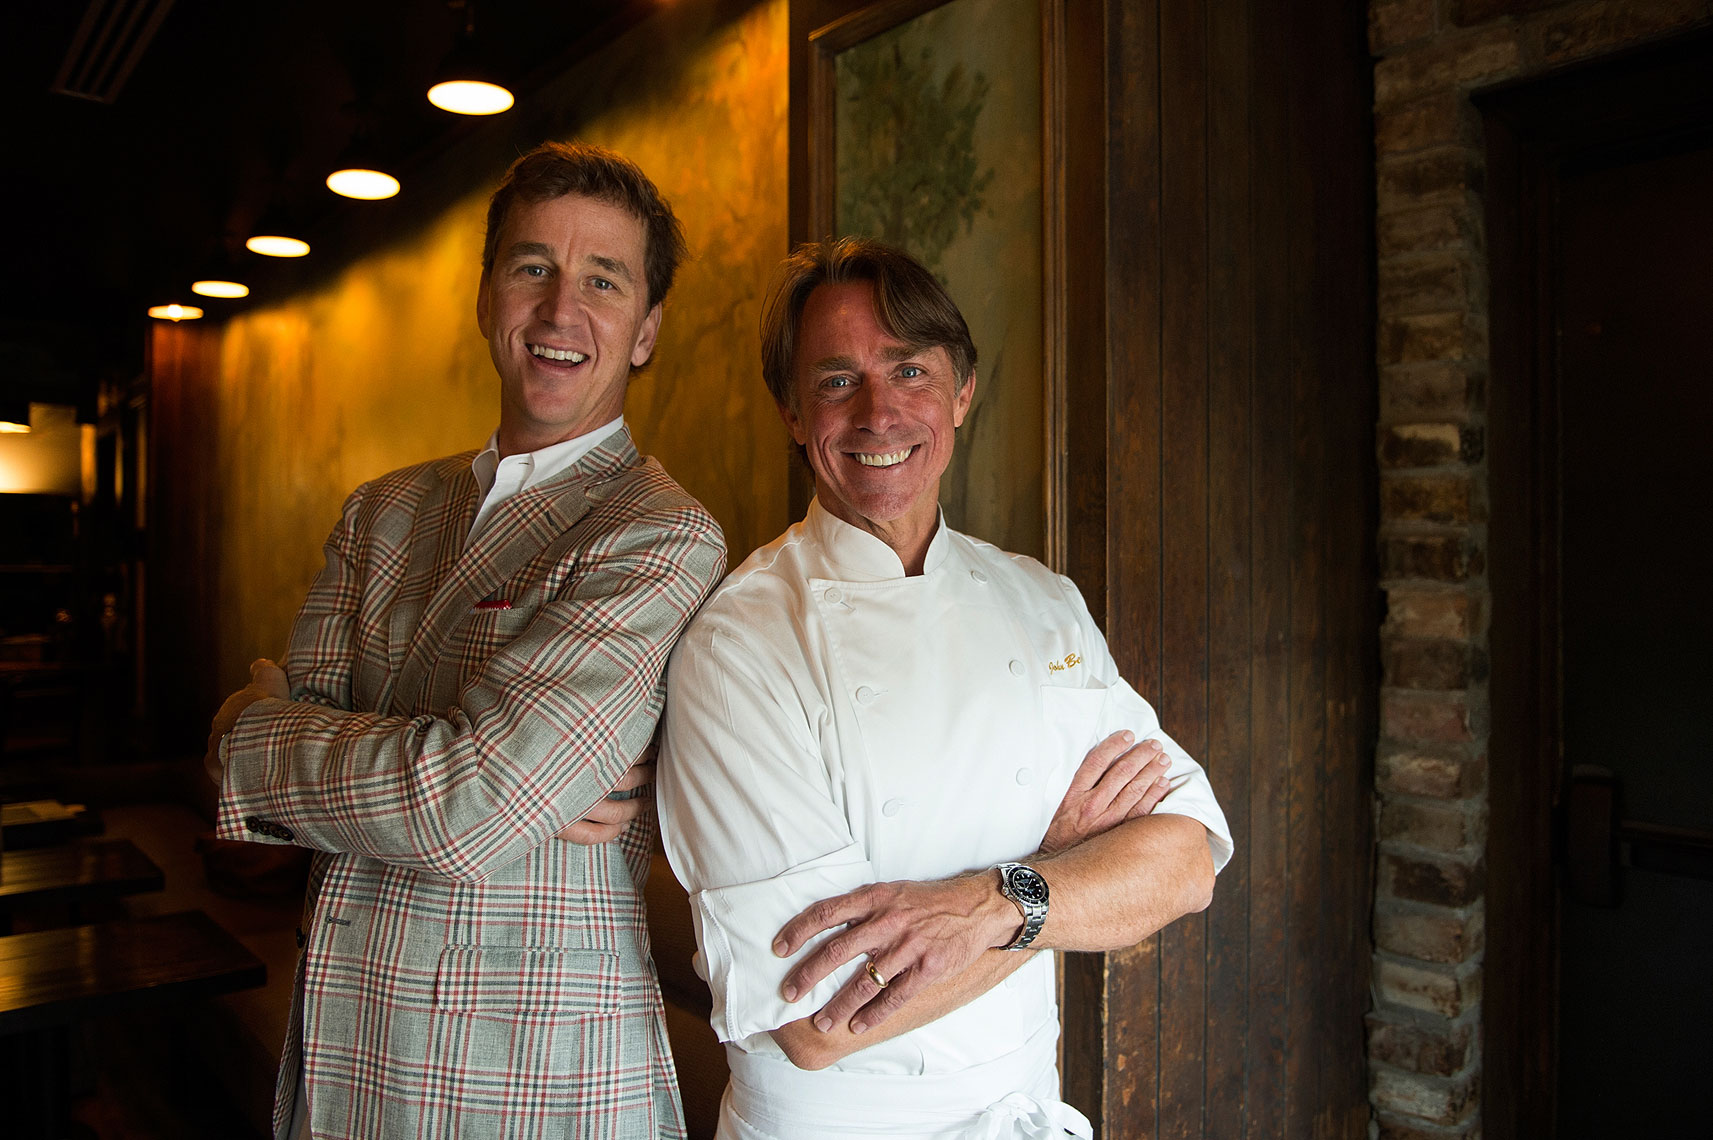 Cooper-Manning-and-John-Besh-at-Pontchartrain-hotel